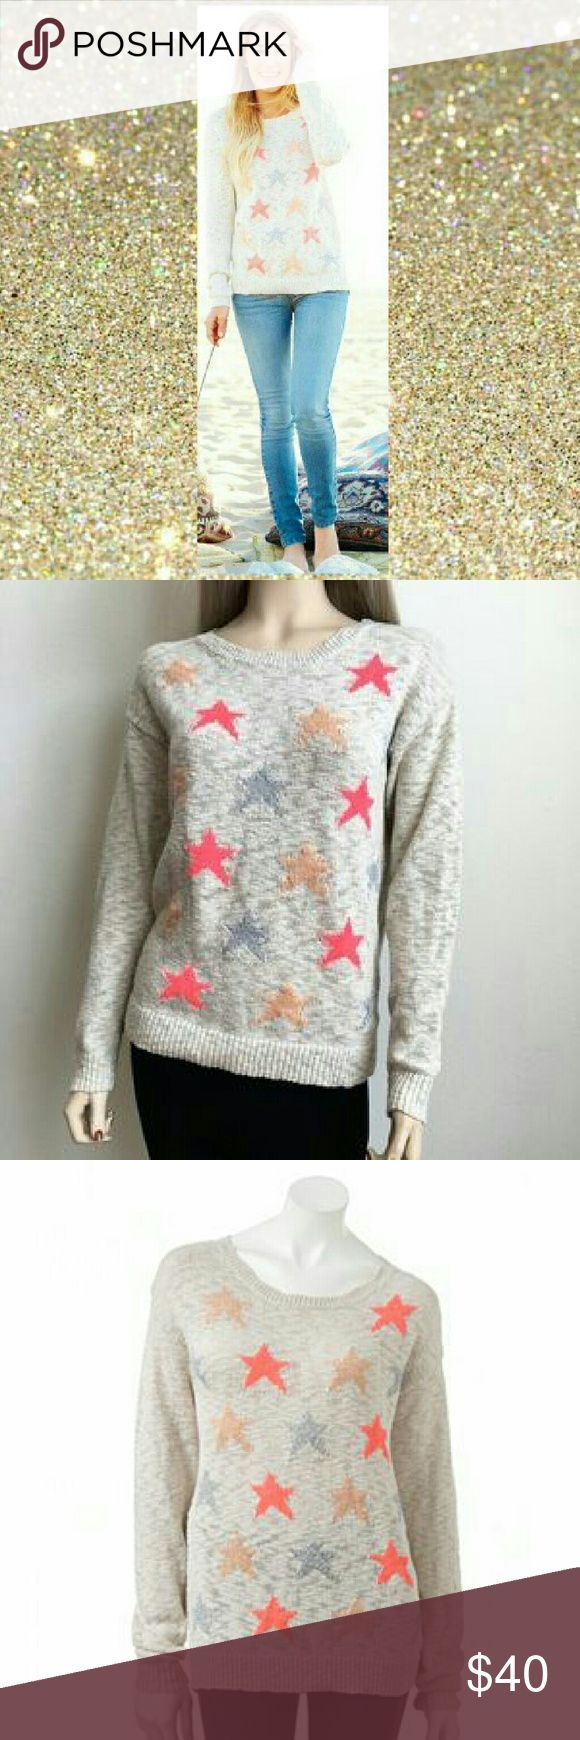 LC Lauren Conrad Sparkle Star Sweater Gorgeous sweater in great condition, sadly it's too big on me. Relax comfy fit. LC Lauren Conrad Sweaters Crew & Scoop Necks